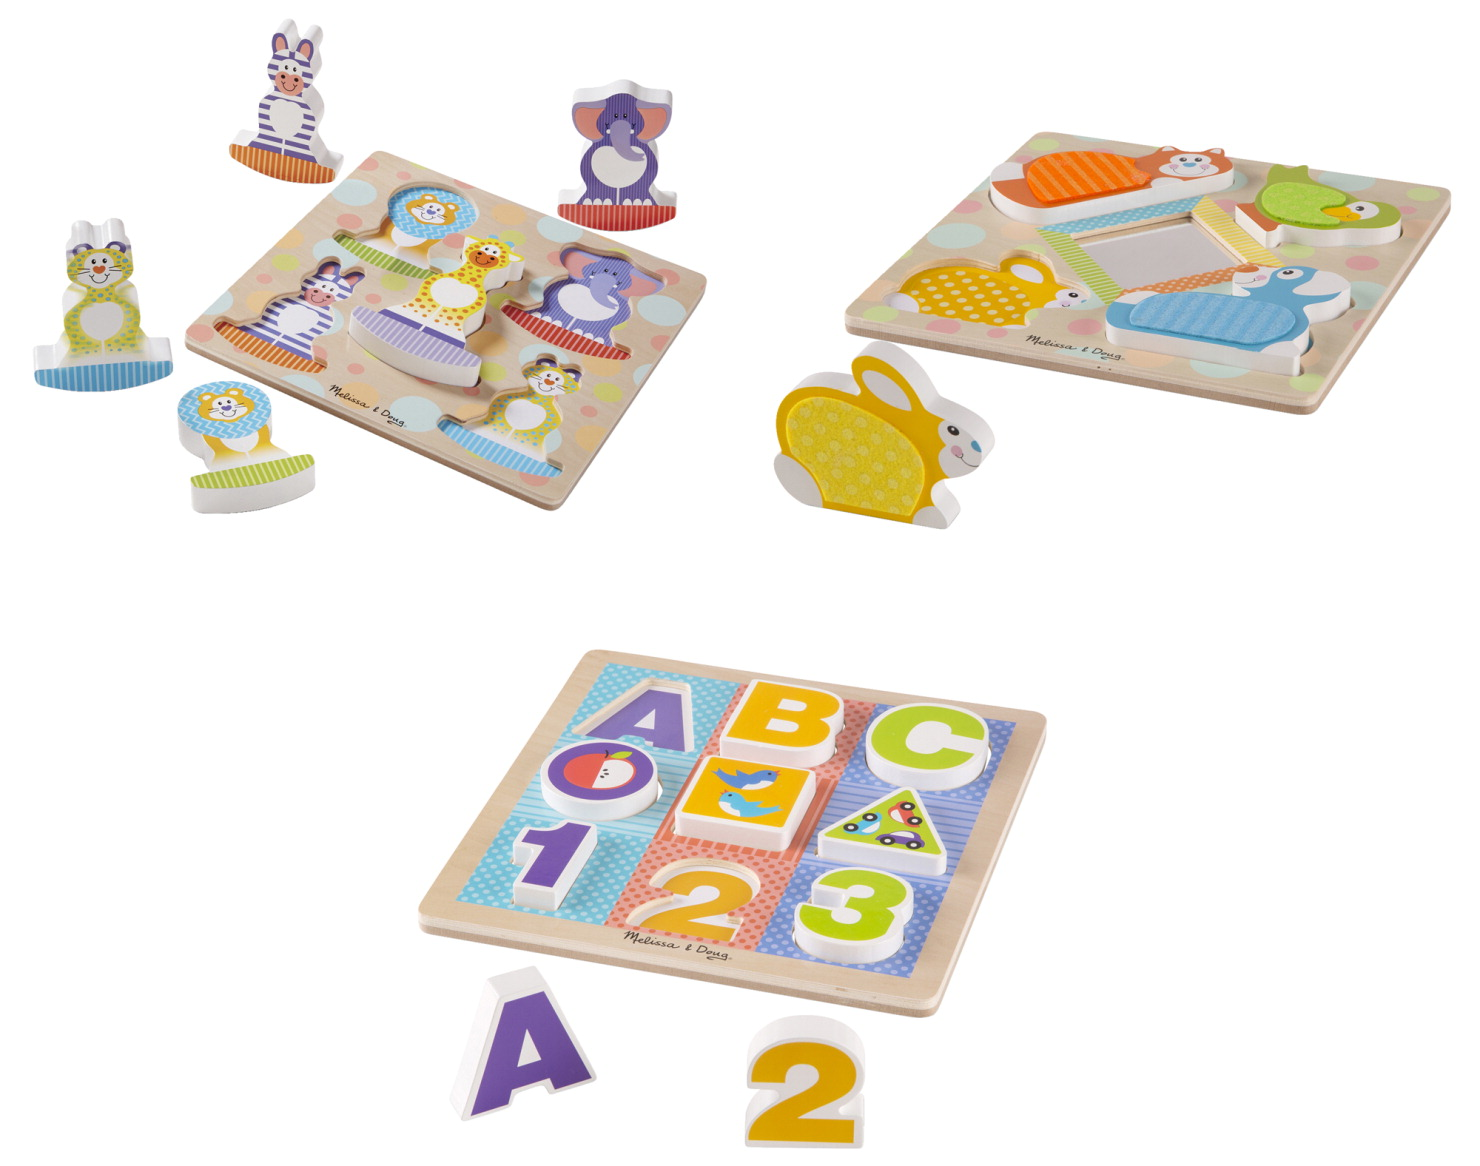 Melissa & Doug First Play Puzzles, Set of 3